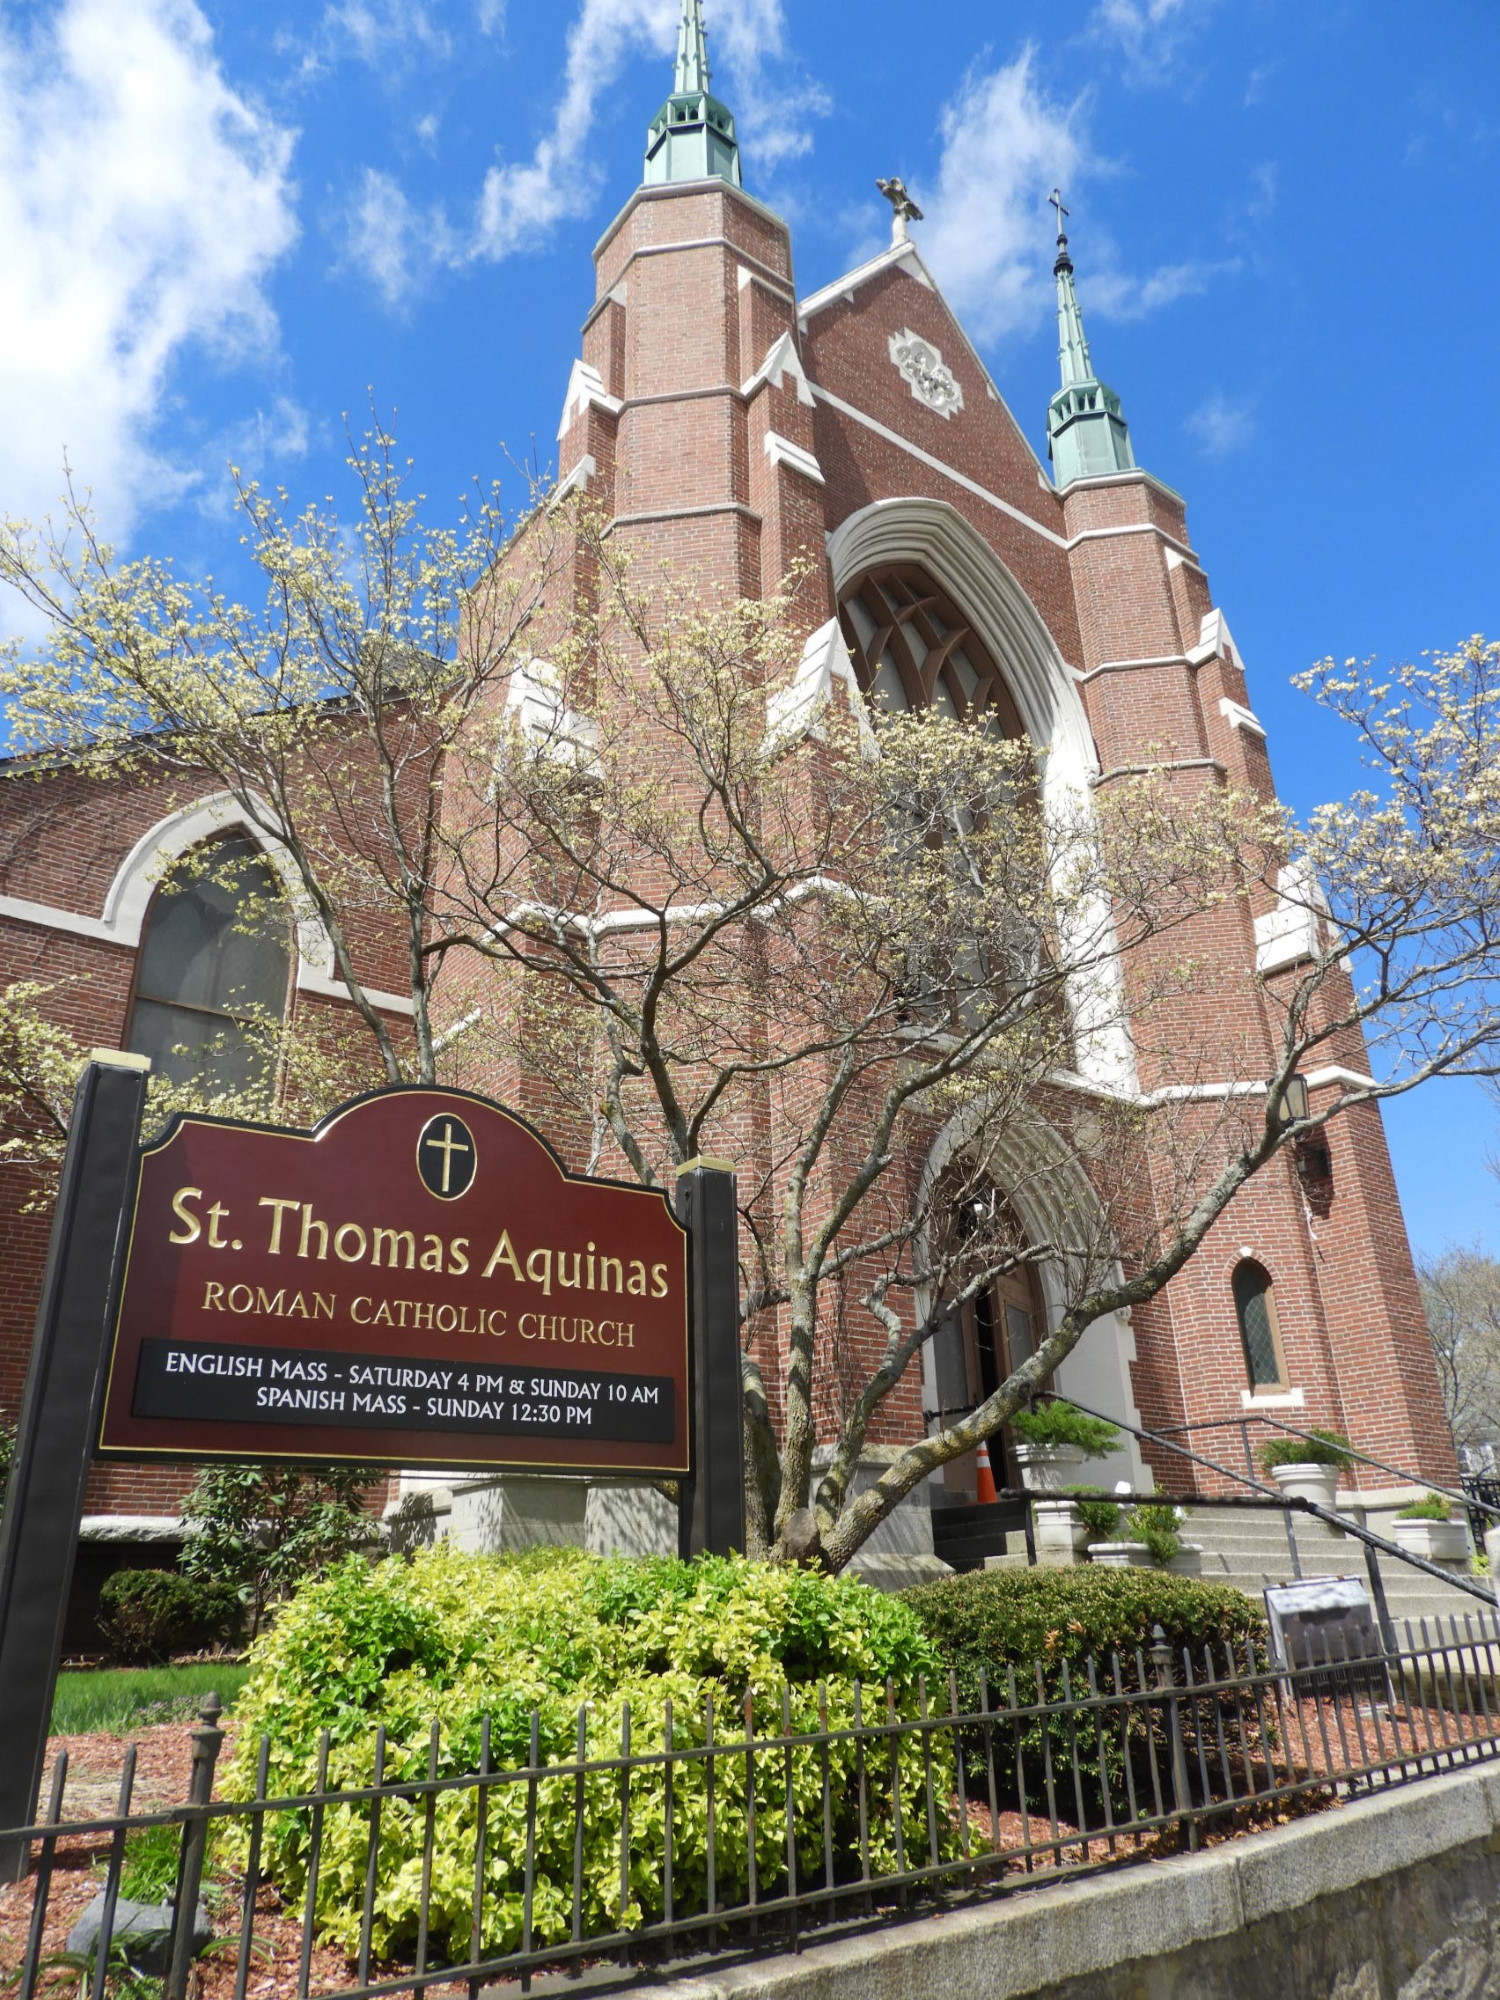 St. Thomas Aquinas Church. Photograph by Richard Heath, 2019